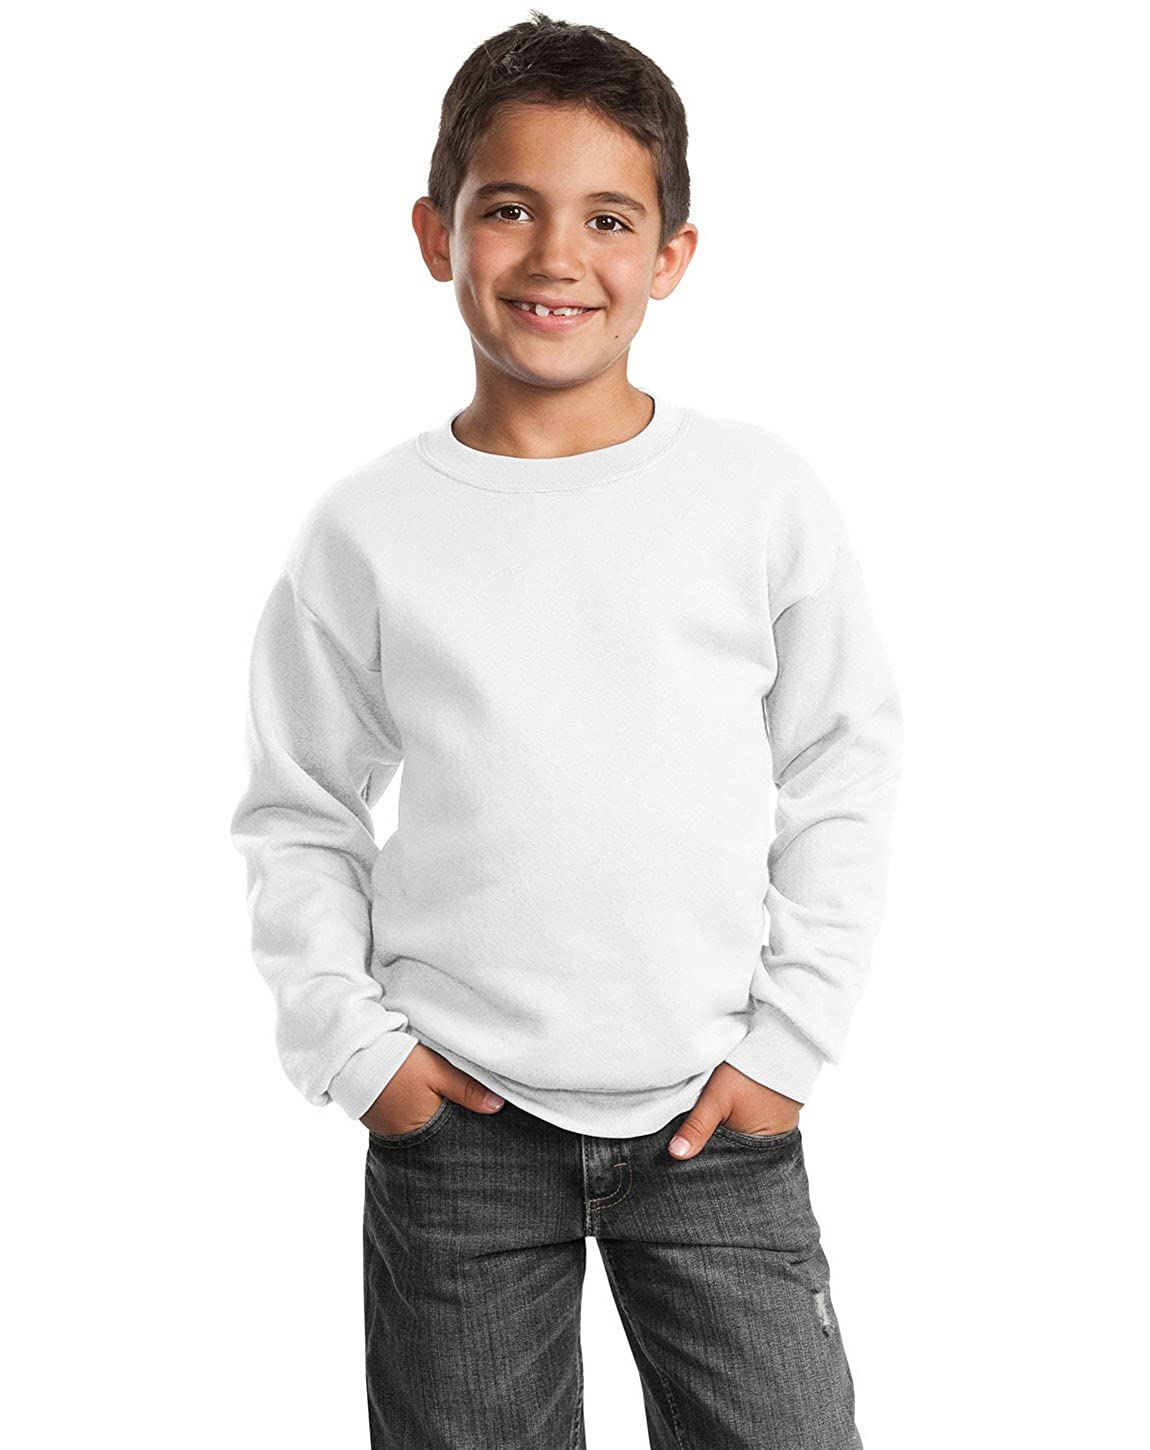 XL Port /& Company PC90Y Youth Crewneck Sweatshirt White